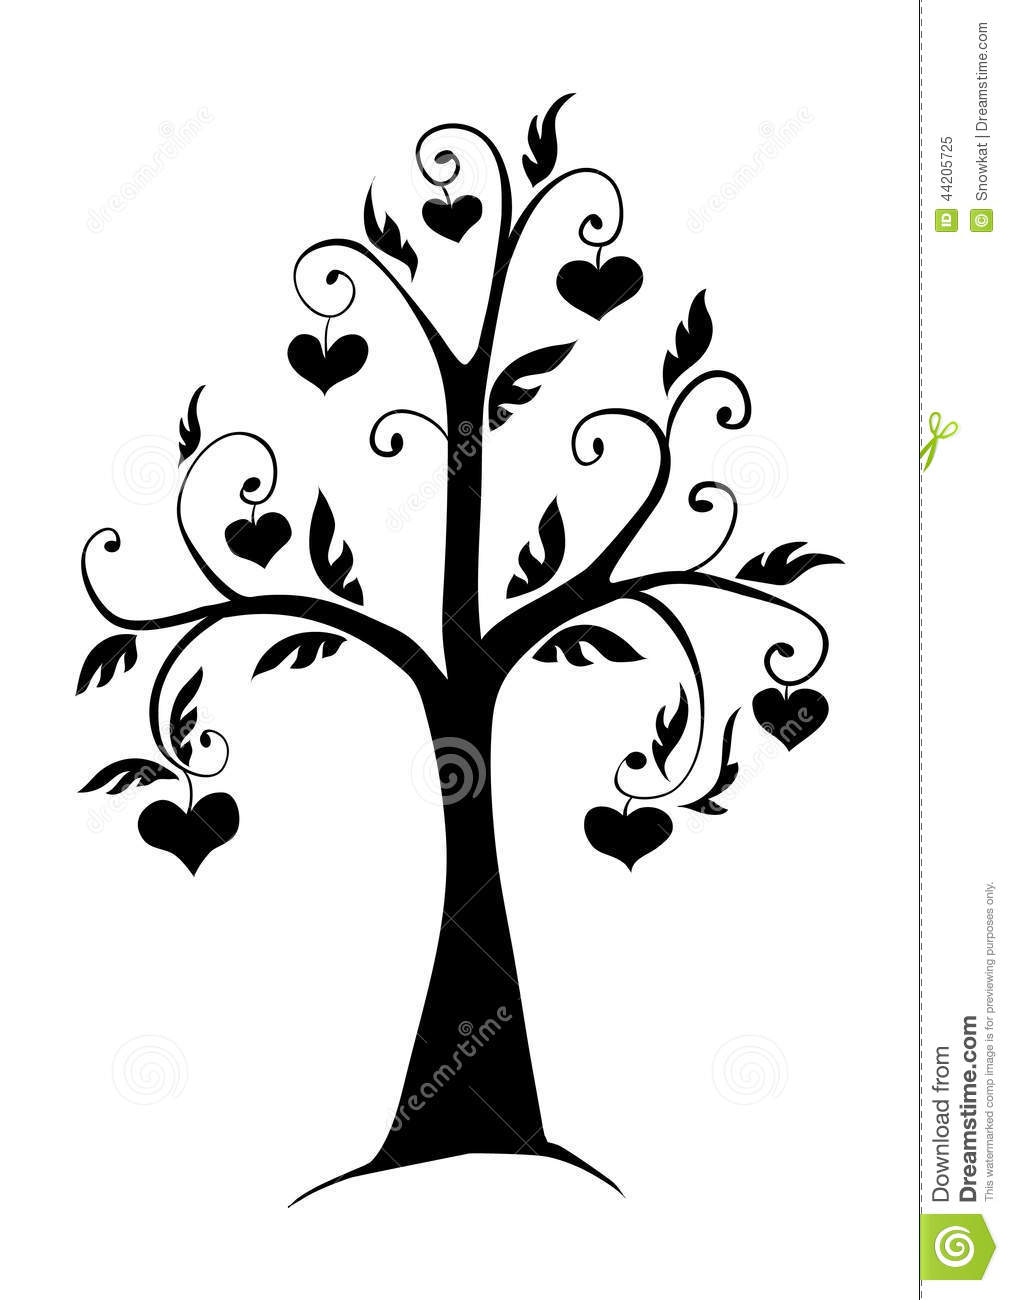 The Tree In The Hearts Stock Vector Image 44205725